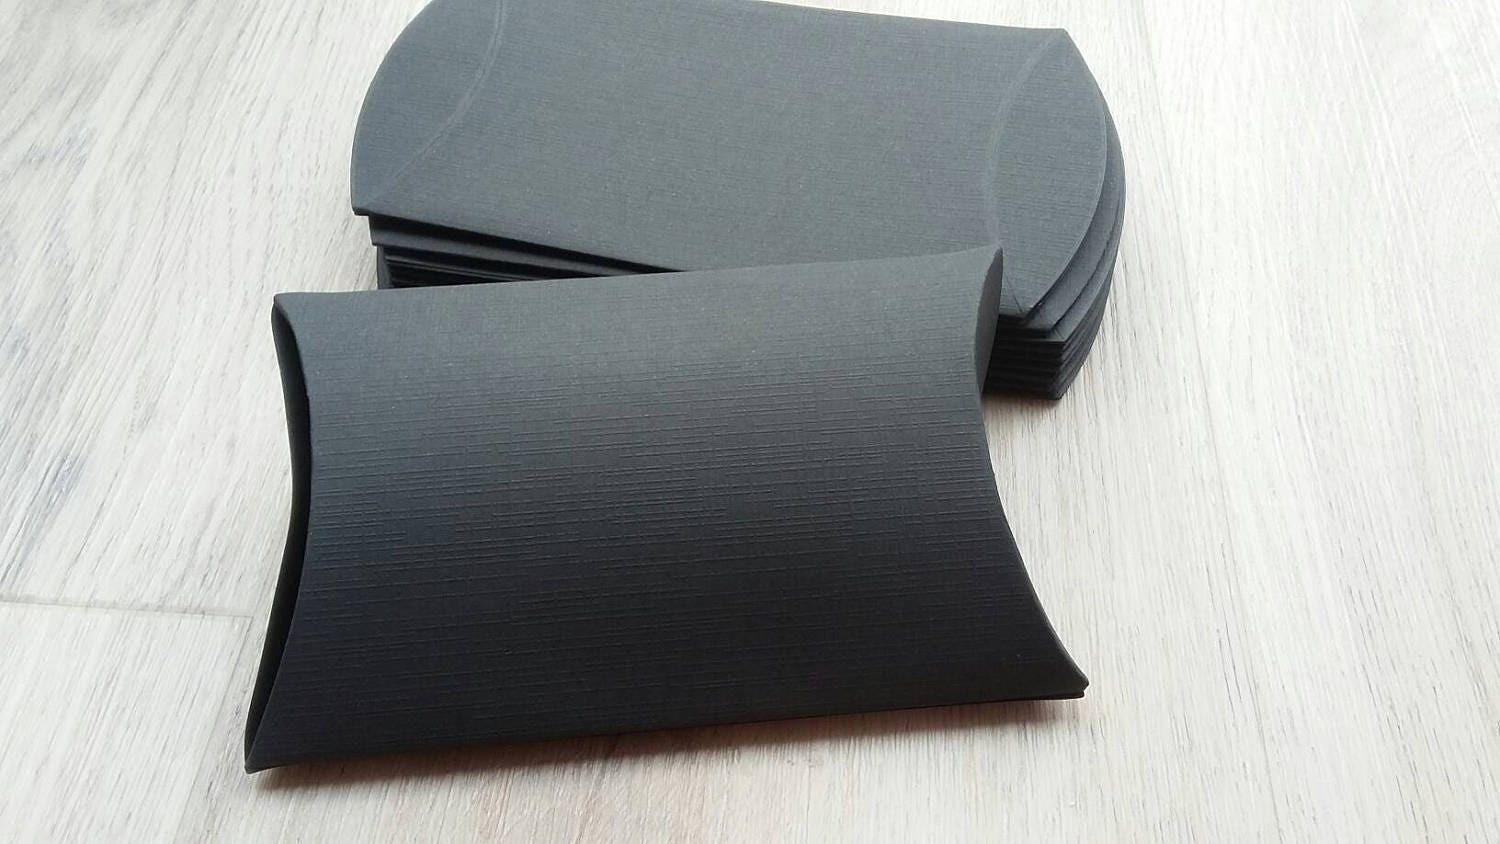 Black boxes set of 10 pillow boxes gift box party favor for Black box container studios